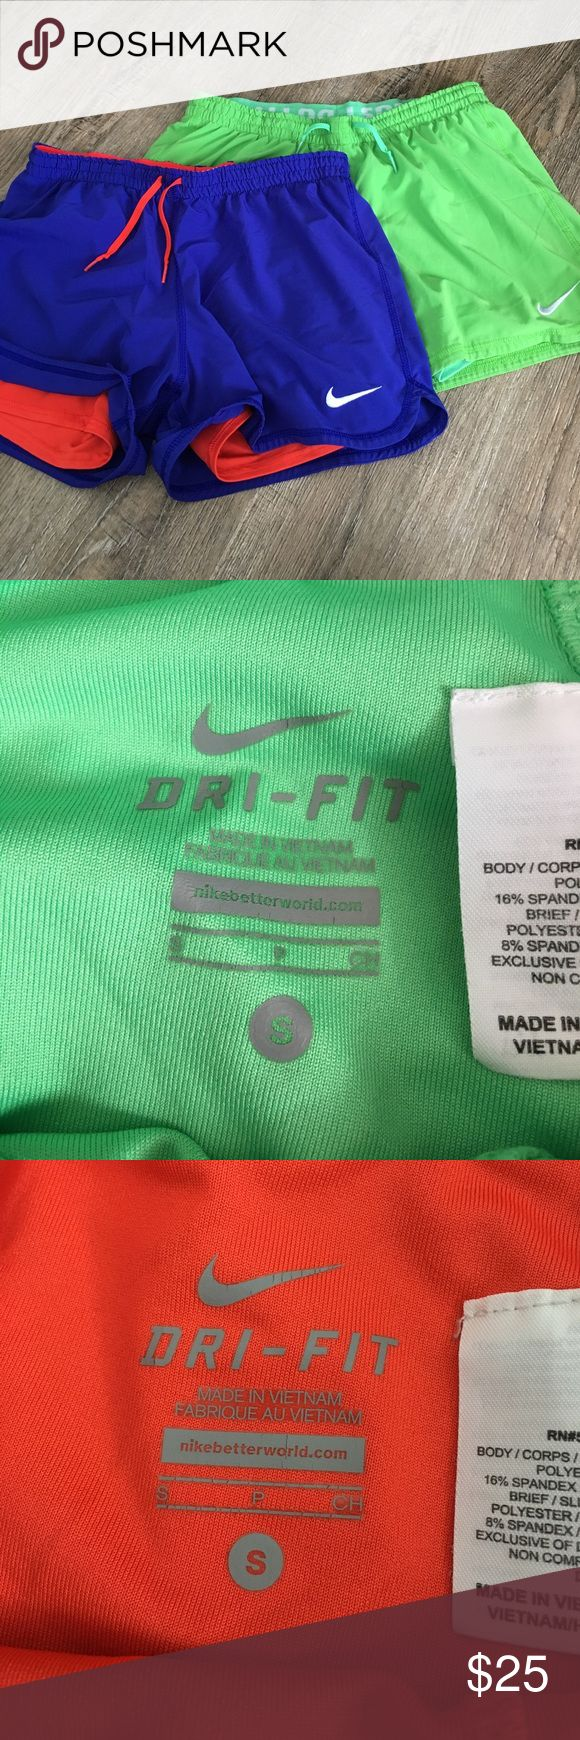 Nike dri-fit phantom 2-in-1 running shorts Size small Nike dri-fit shorts, both with attached spandex: green with green (has slight mark on front right), blue/purple with orange/red * originally $40 each Nike Shorts